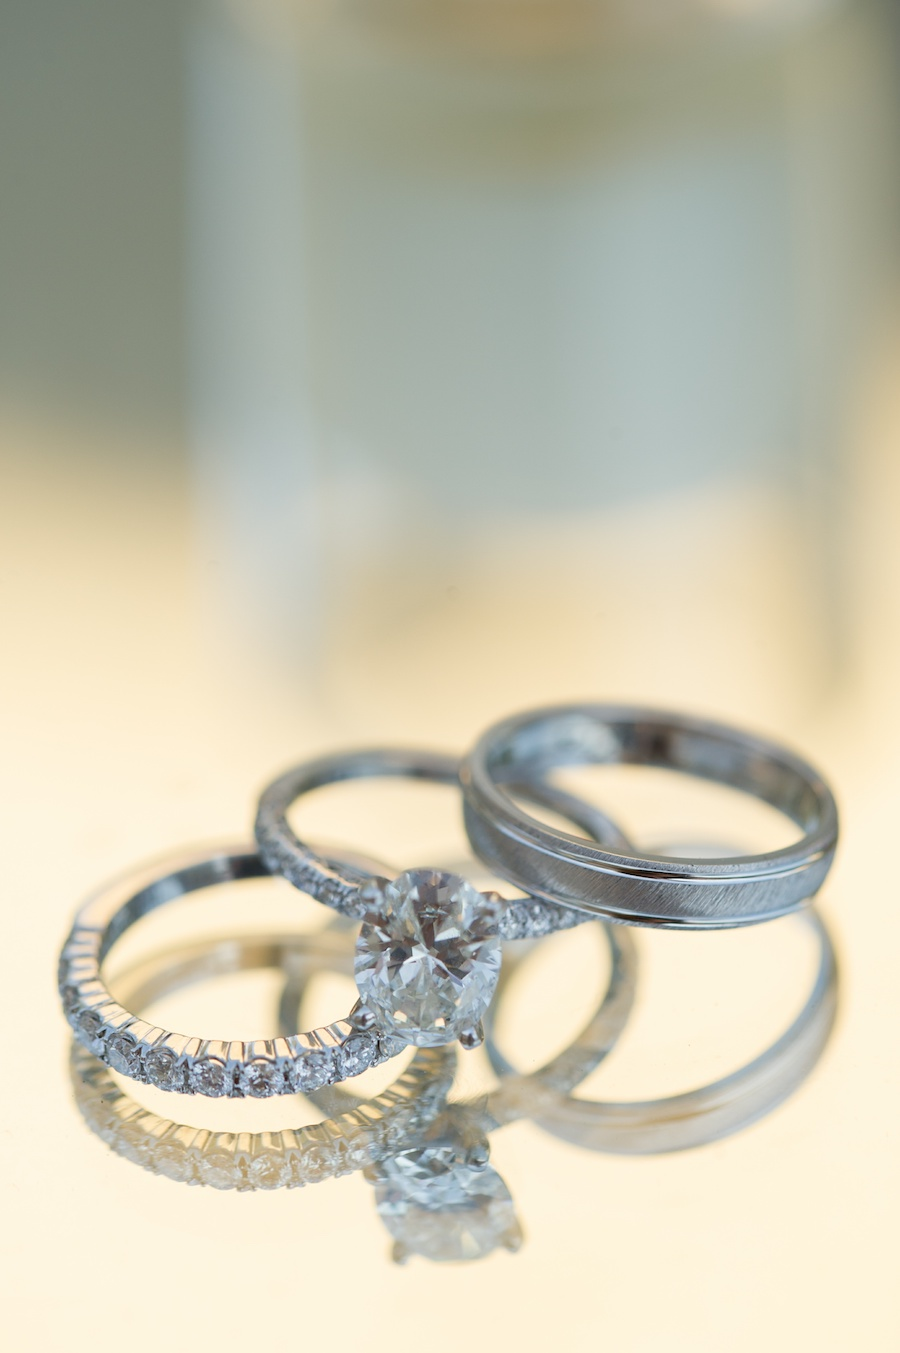 Bride and Groom Wedding Ring and Engagement Ring Detail with Reflection